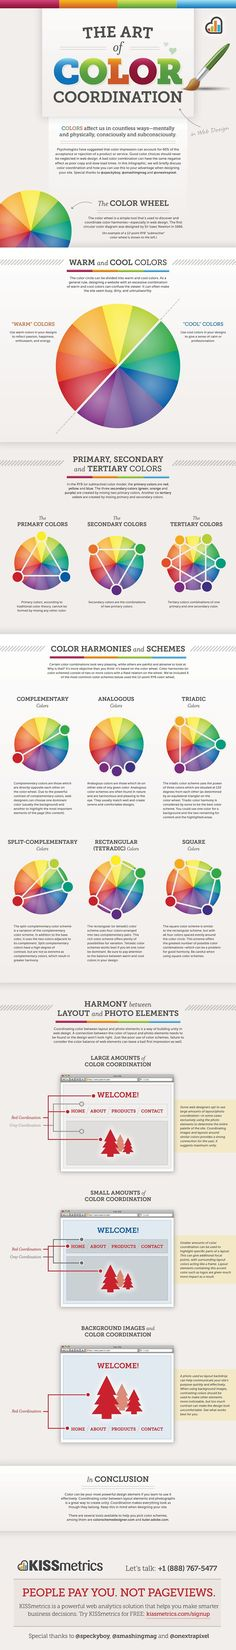 Colors affect us in countless ways—mentally and physically, consciously and subconsciously. Psychologists have suggested that color impression can a